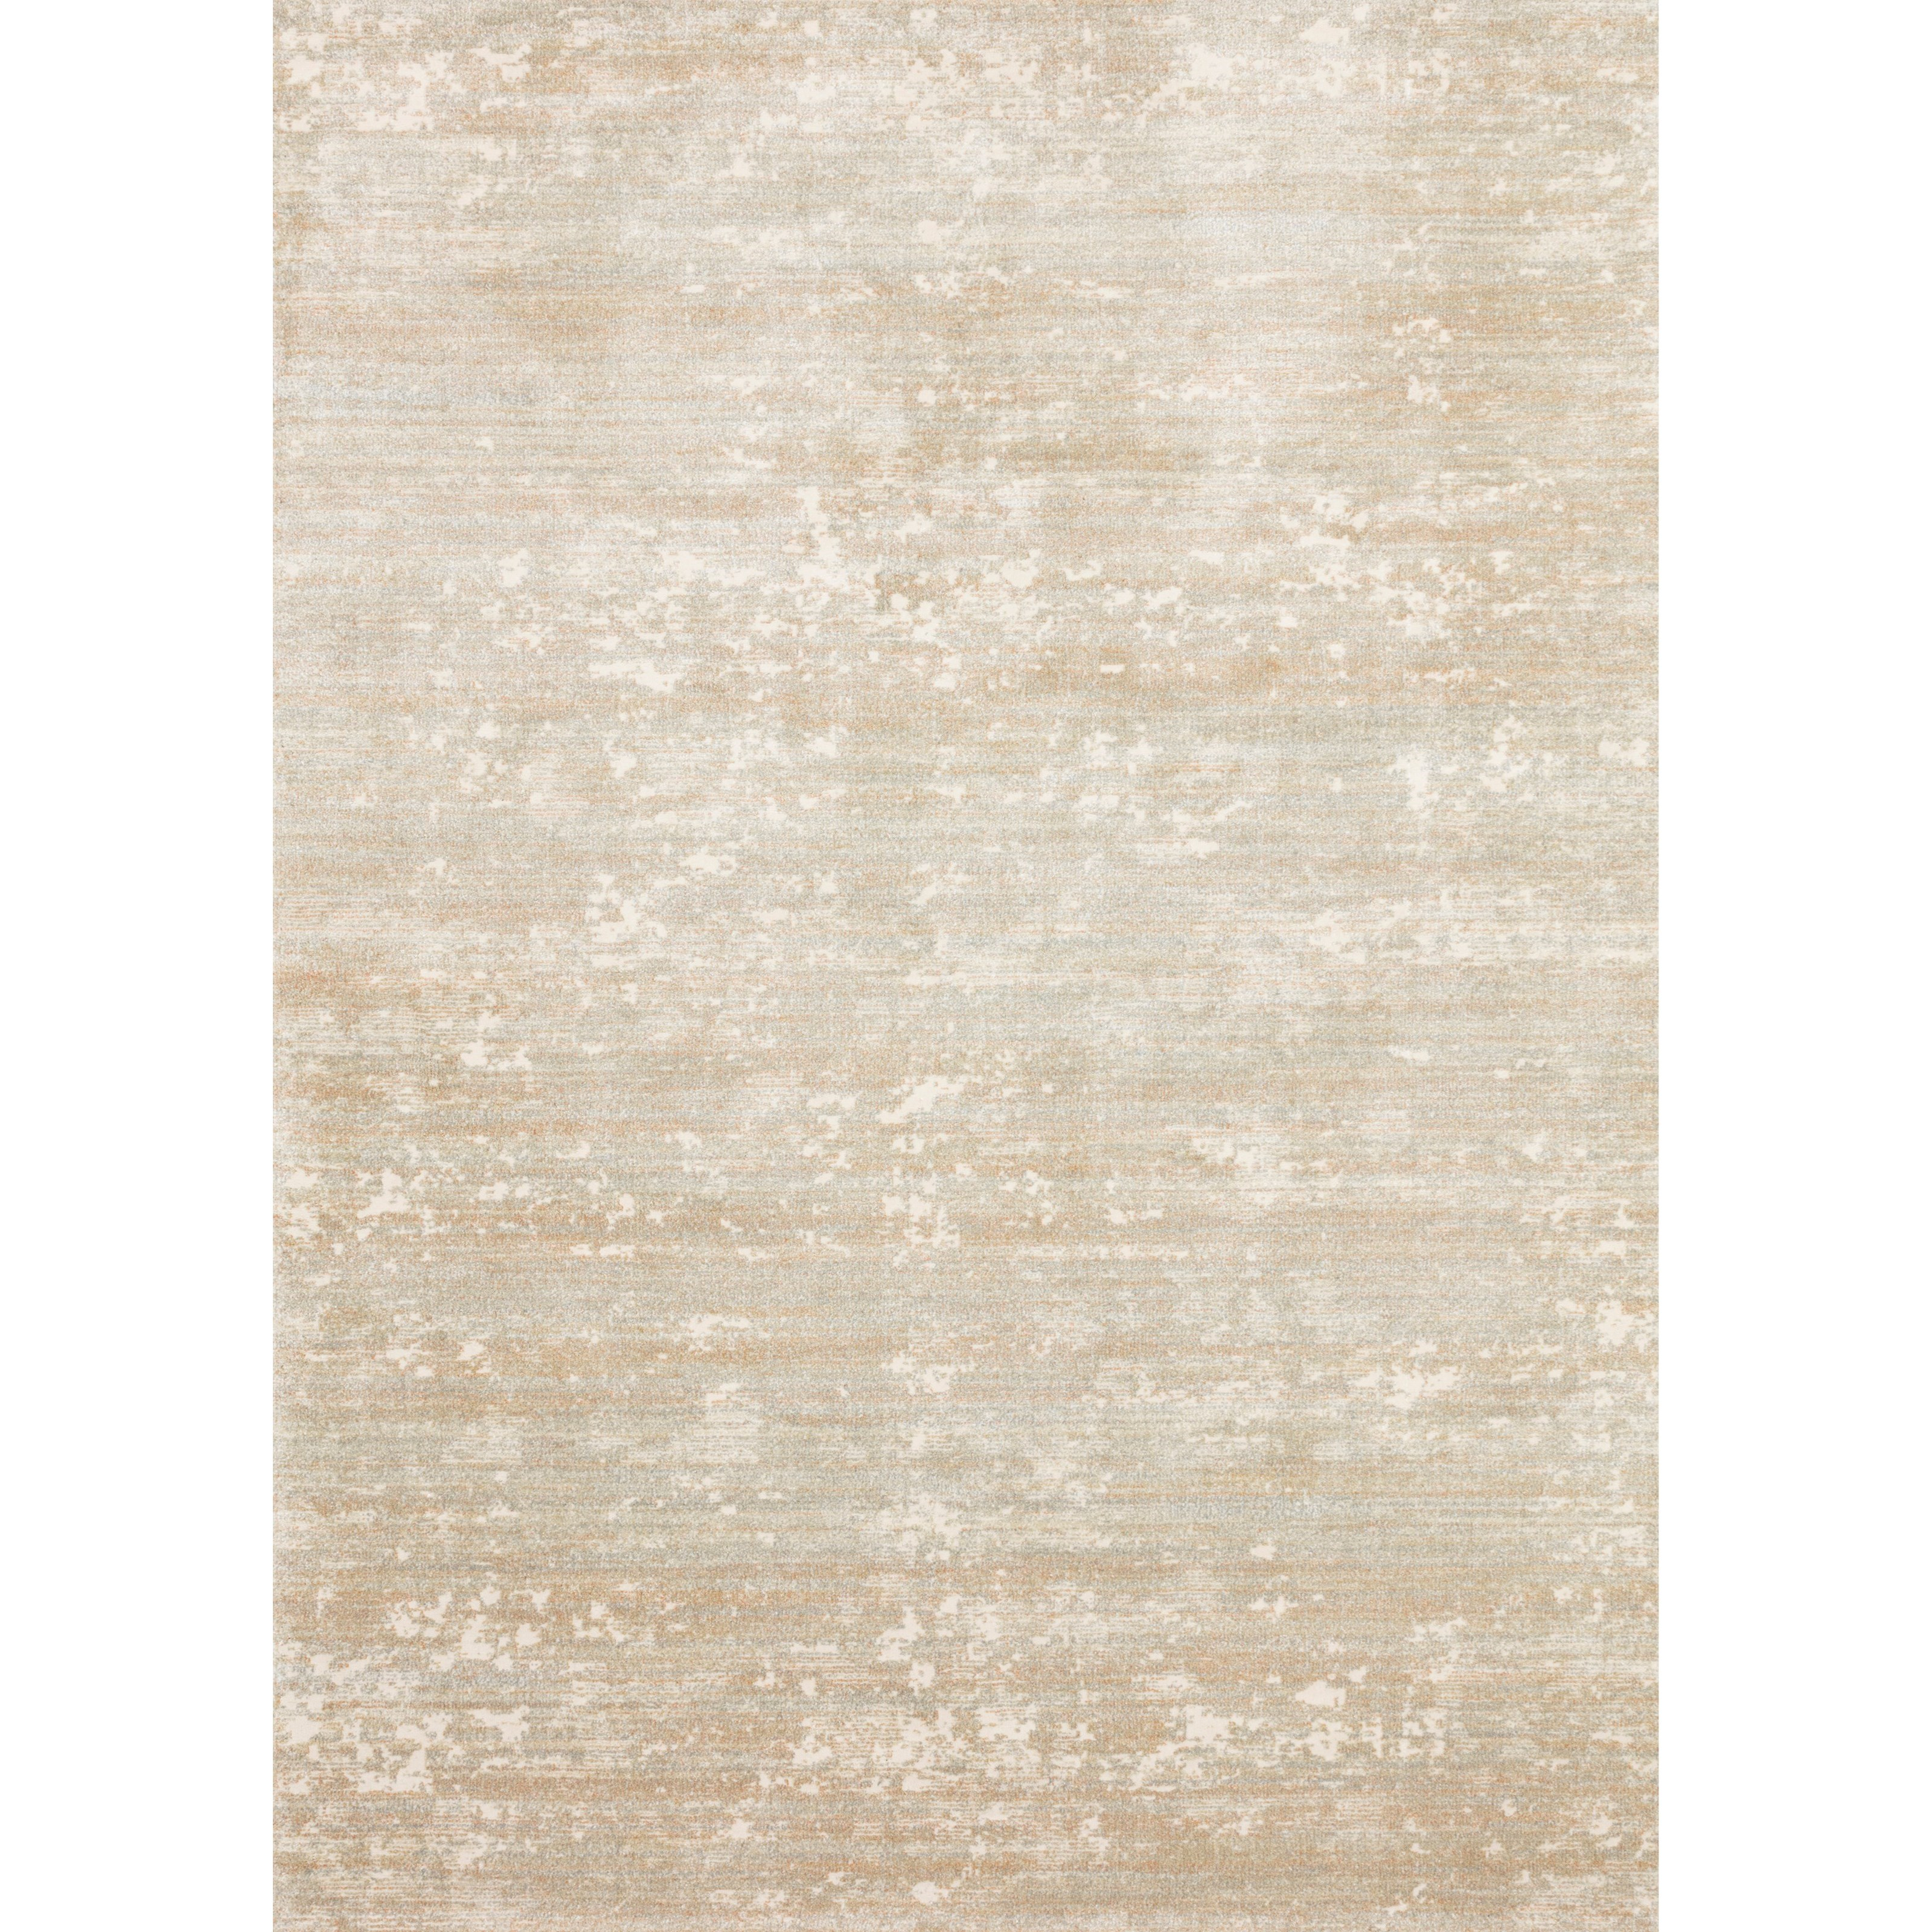 "Augustus 2'7"" x 7'8"" Sunset / Mist Rug by Loloi Rugs at Virginia Furniture Market"